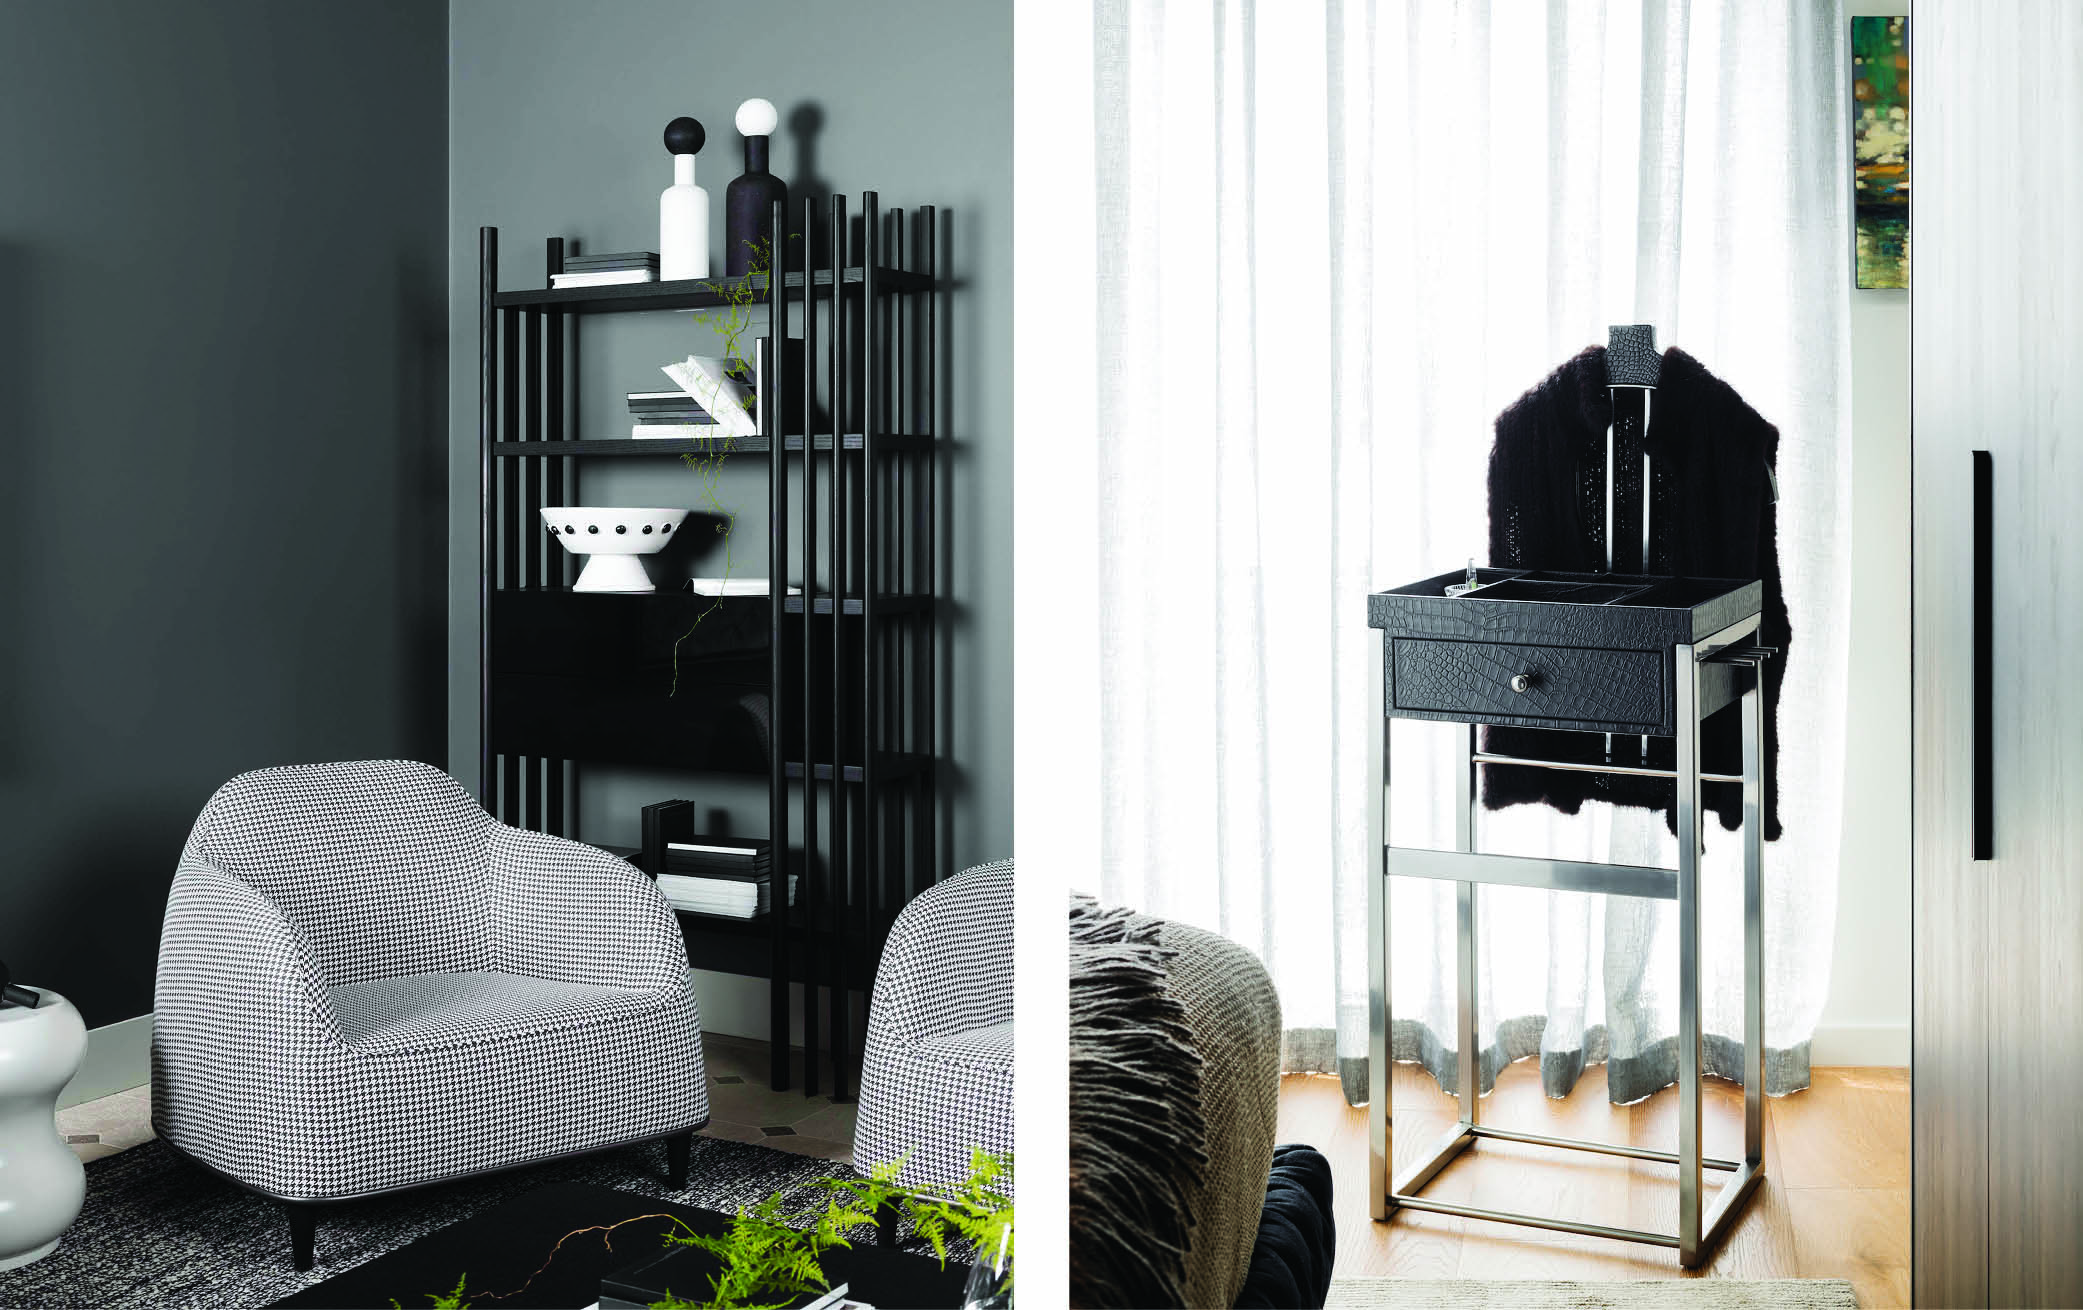 d0720bf205a5 ... lighting and accessories to suit all colour palettes and preferences.  Whether your style is monochrome magic, beautifully bold or peaceful  pastel, ...